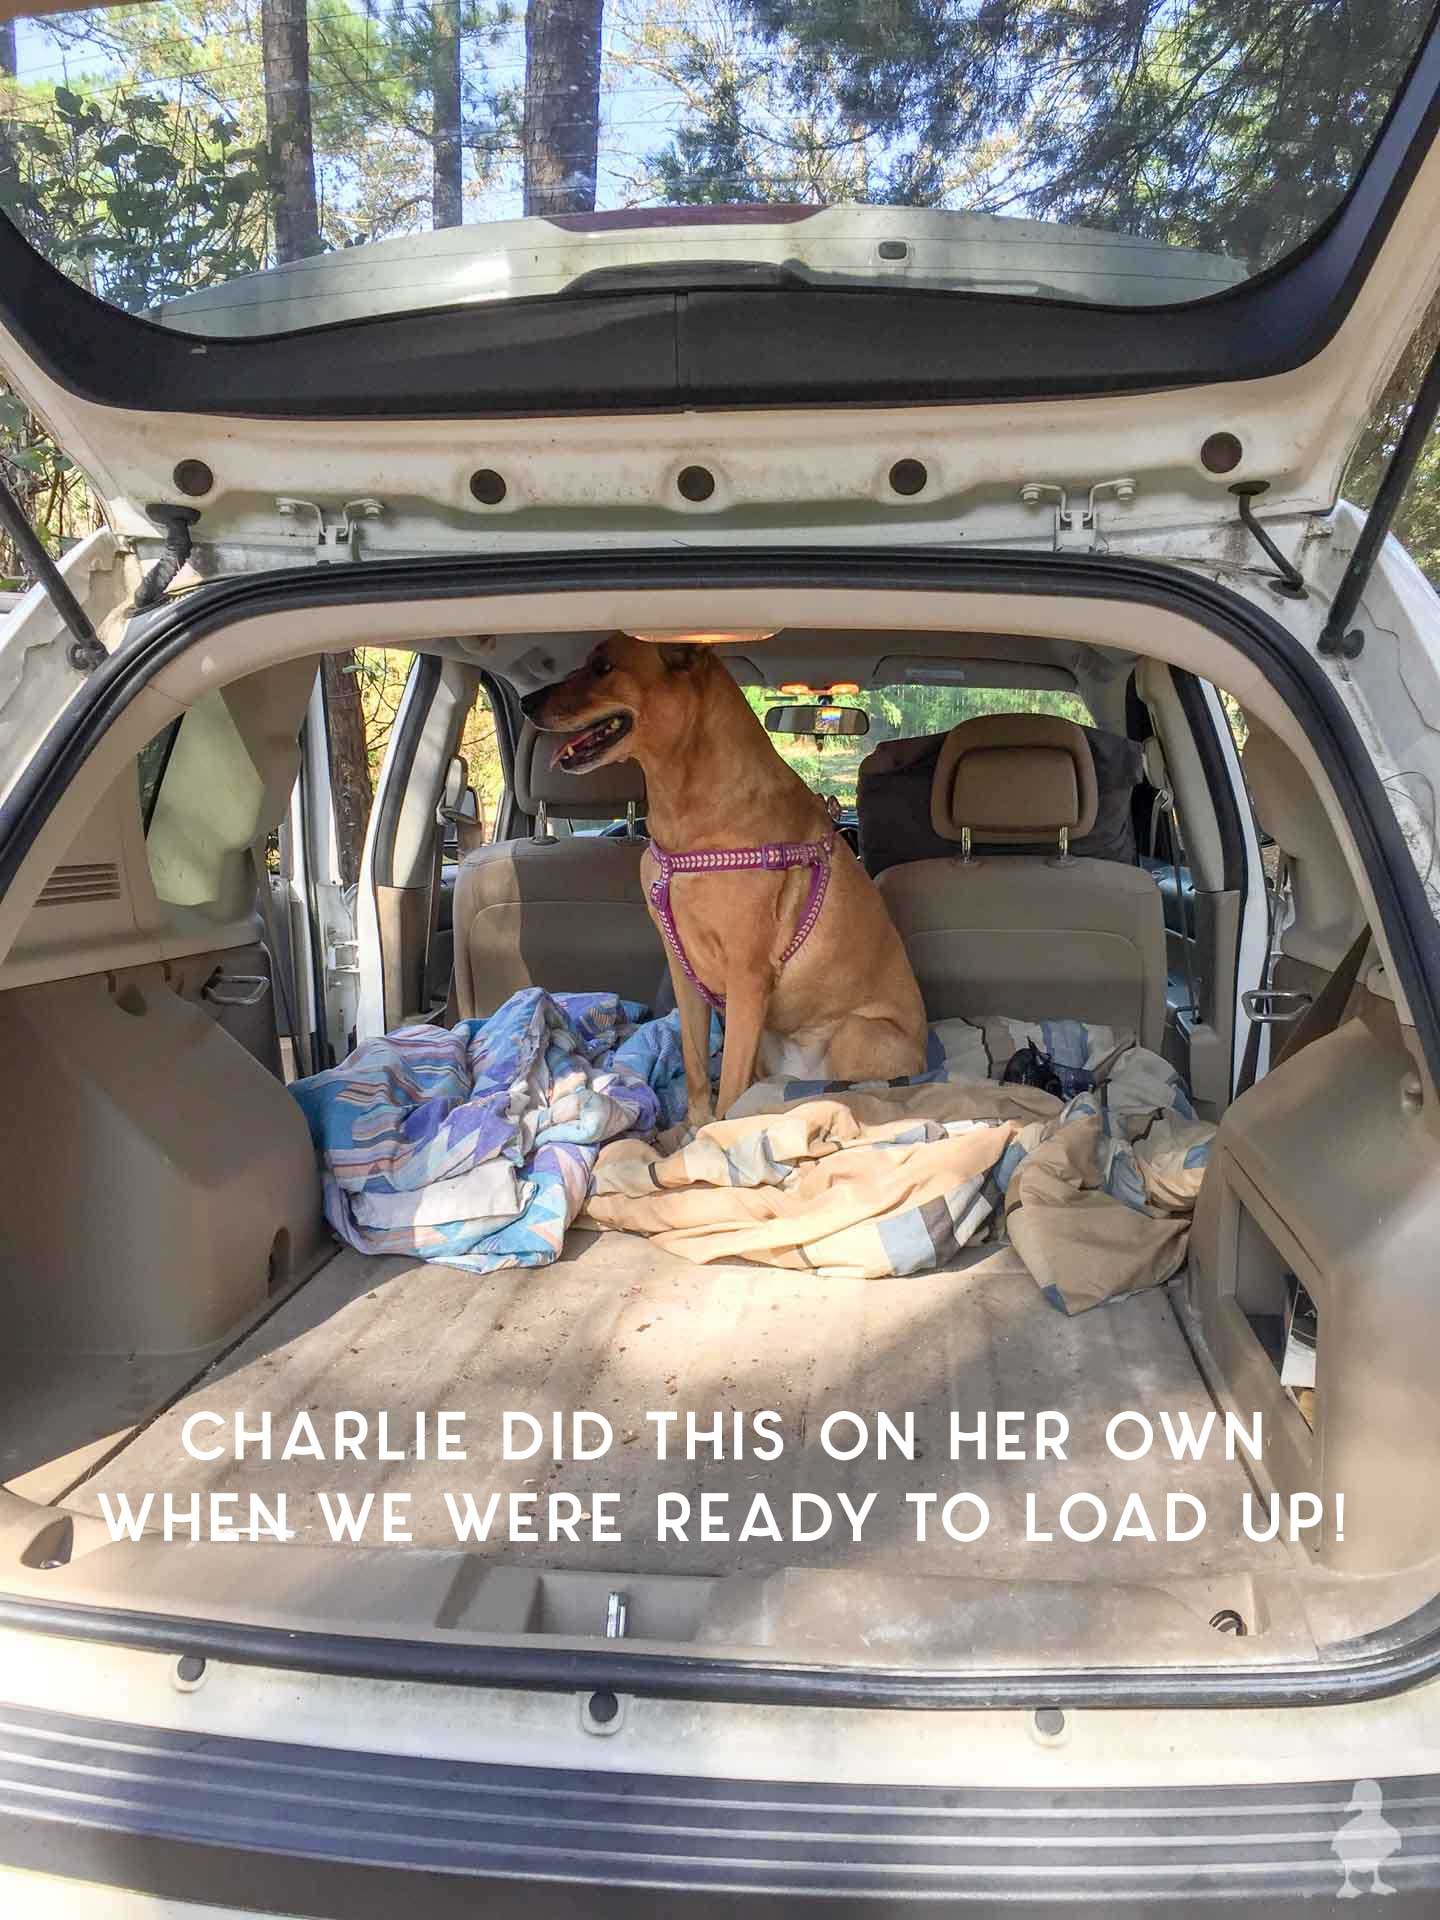 charlie-loading-up-in-the-car